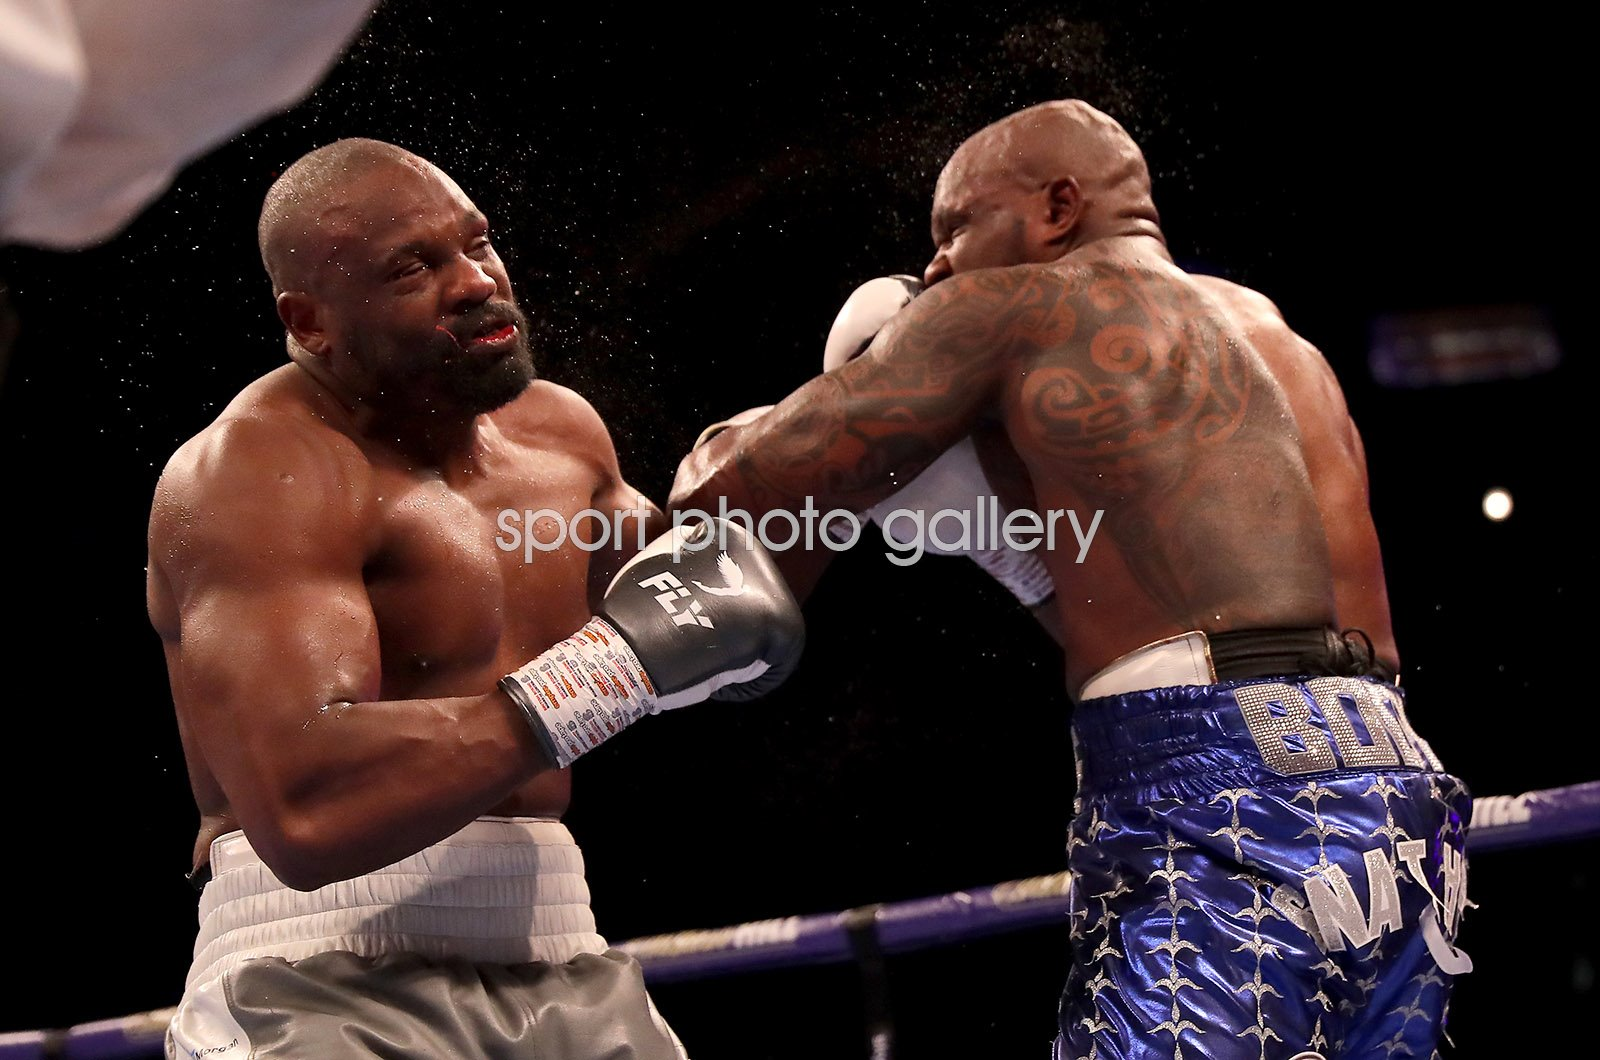 Dillian Whyte knocks out Dereck Chisora London 2018